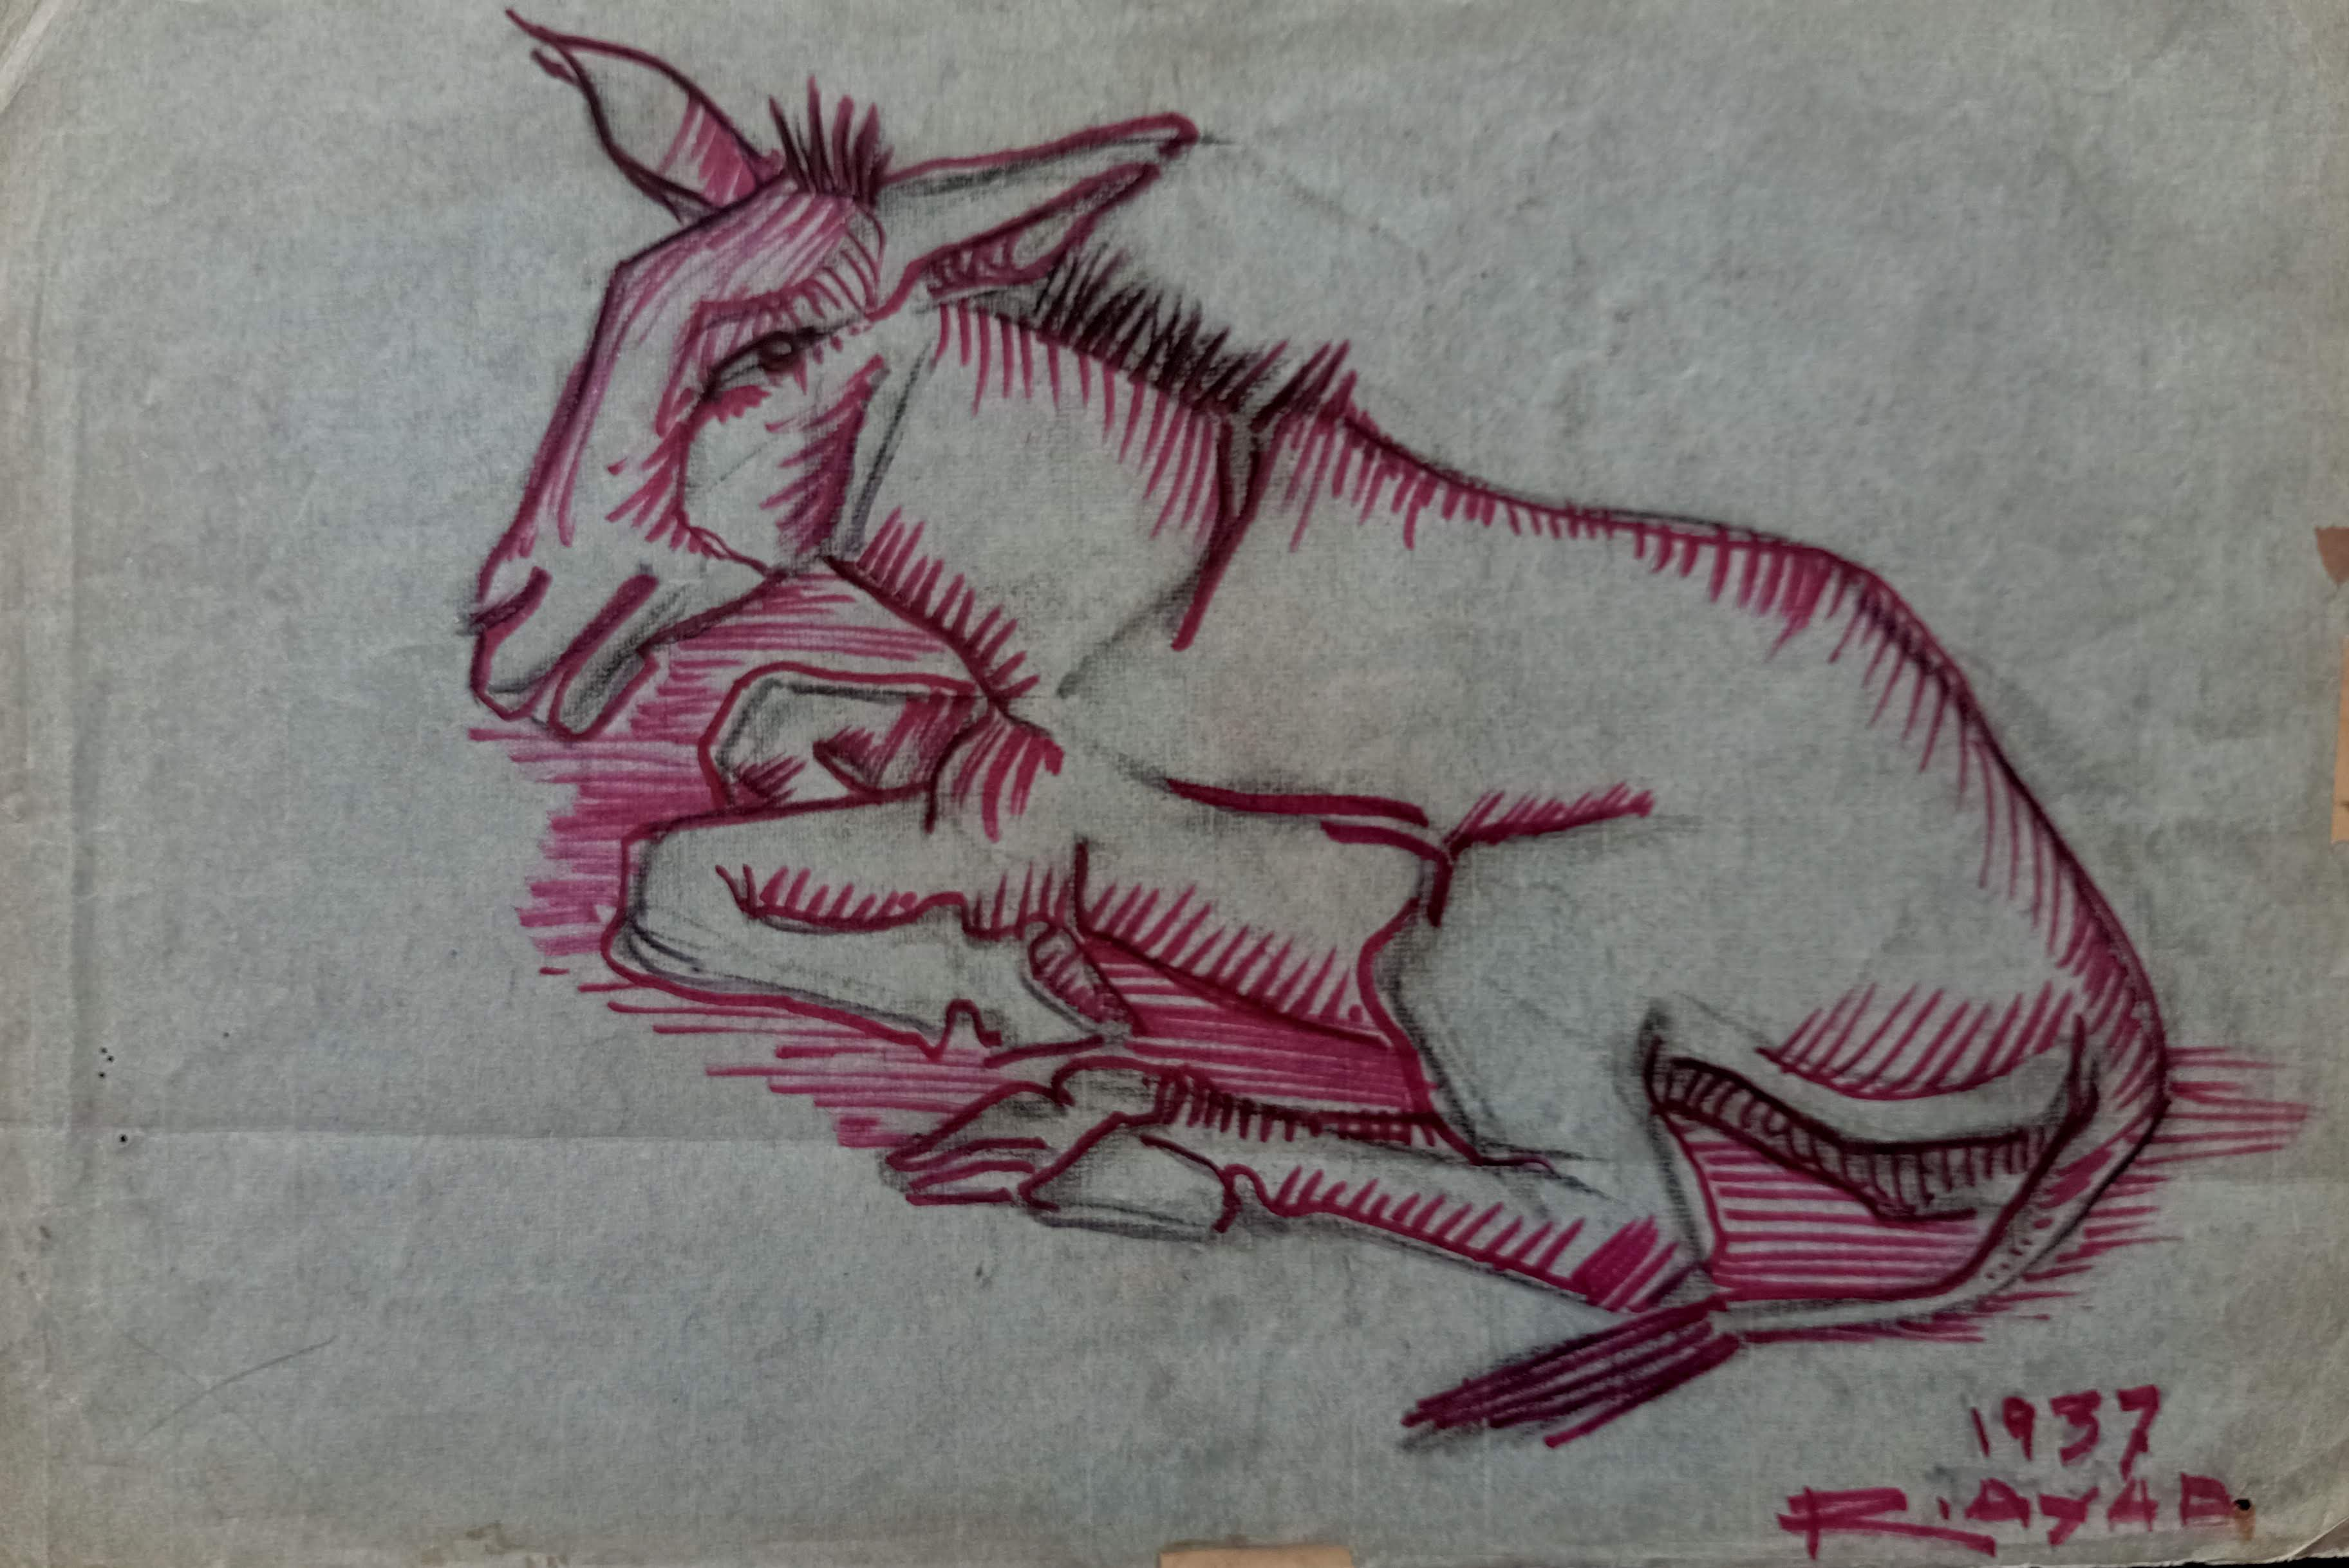 Ragheb Ayad, Seated Pink Donkey, 1937. Mixed media on paper 33×48 cm Signed and dated bottom right.